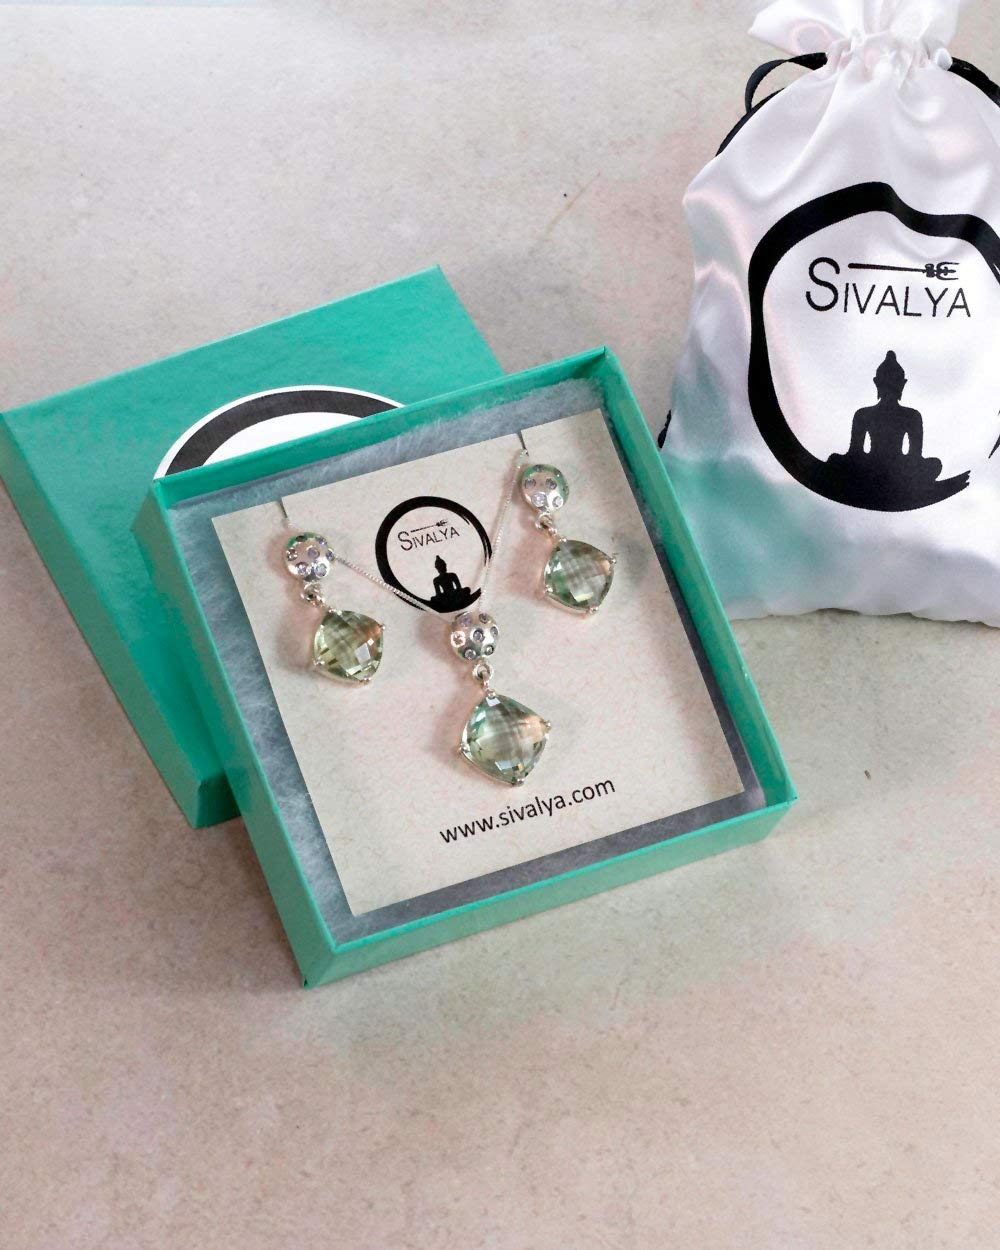 SIVALYA Green Amethyst Necklace and Earrings Set in Sterling Silver, Exquisite handcrafted design in solid 925 silver, Great Gift for Her